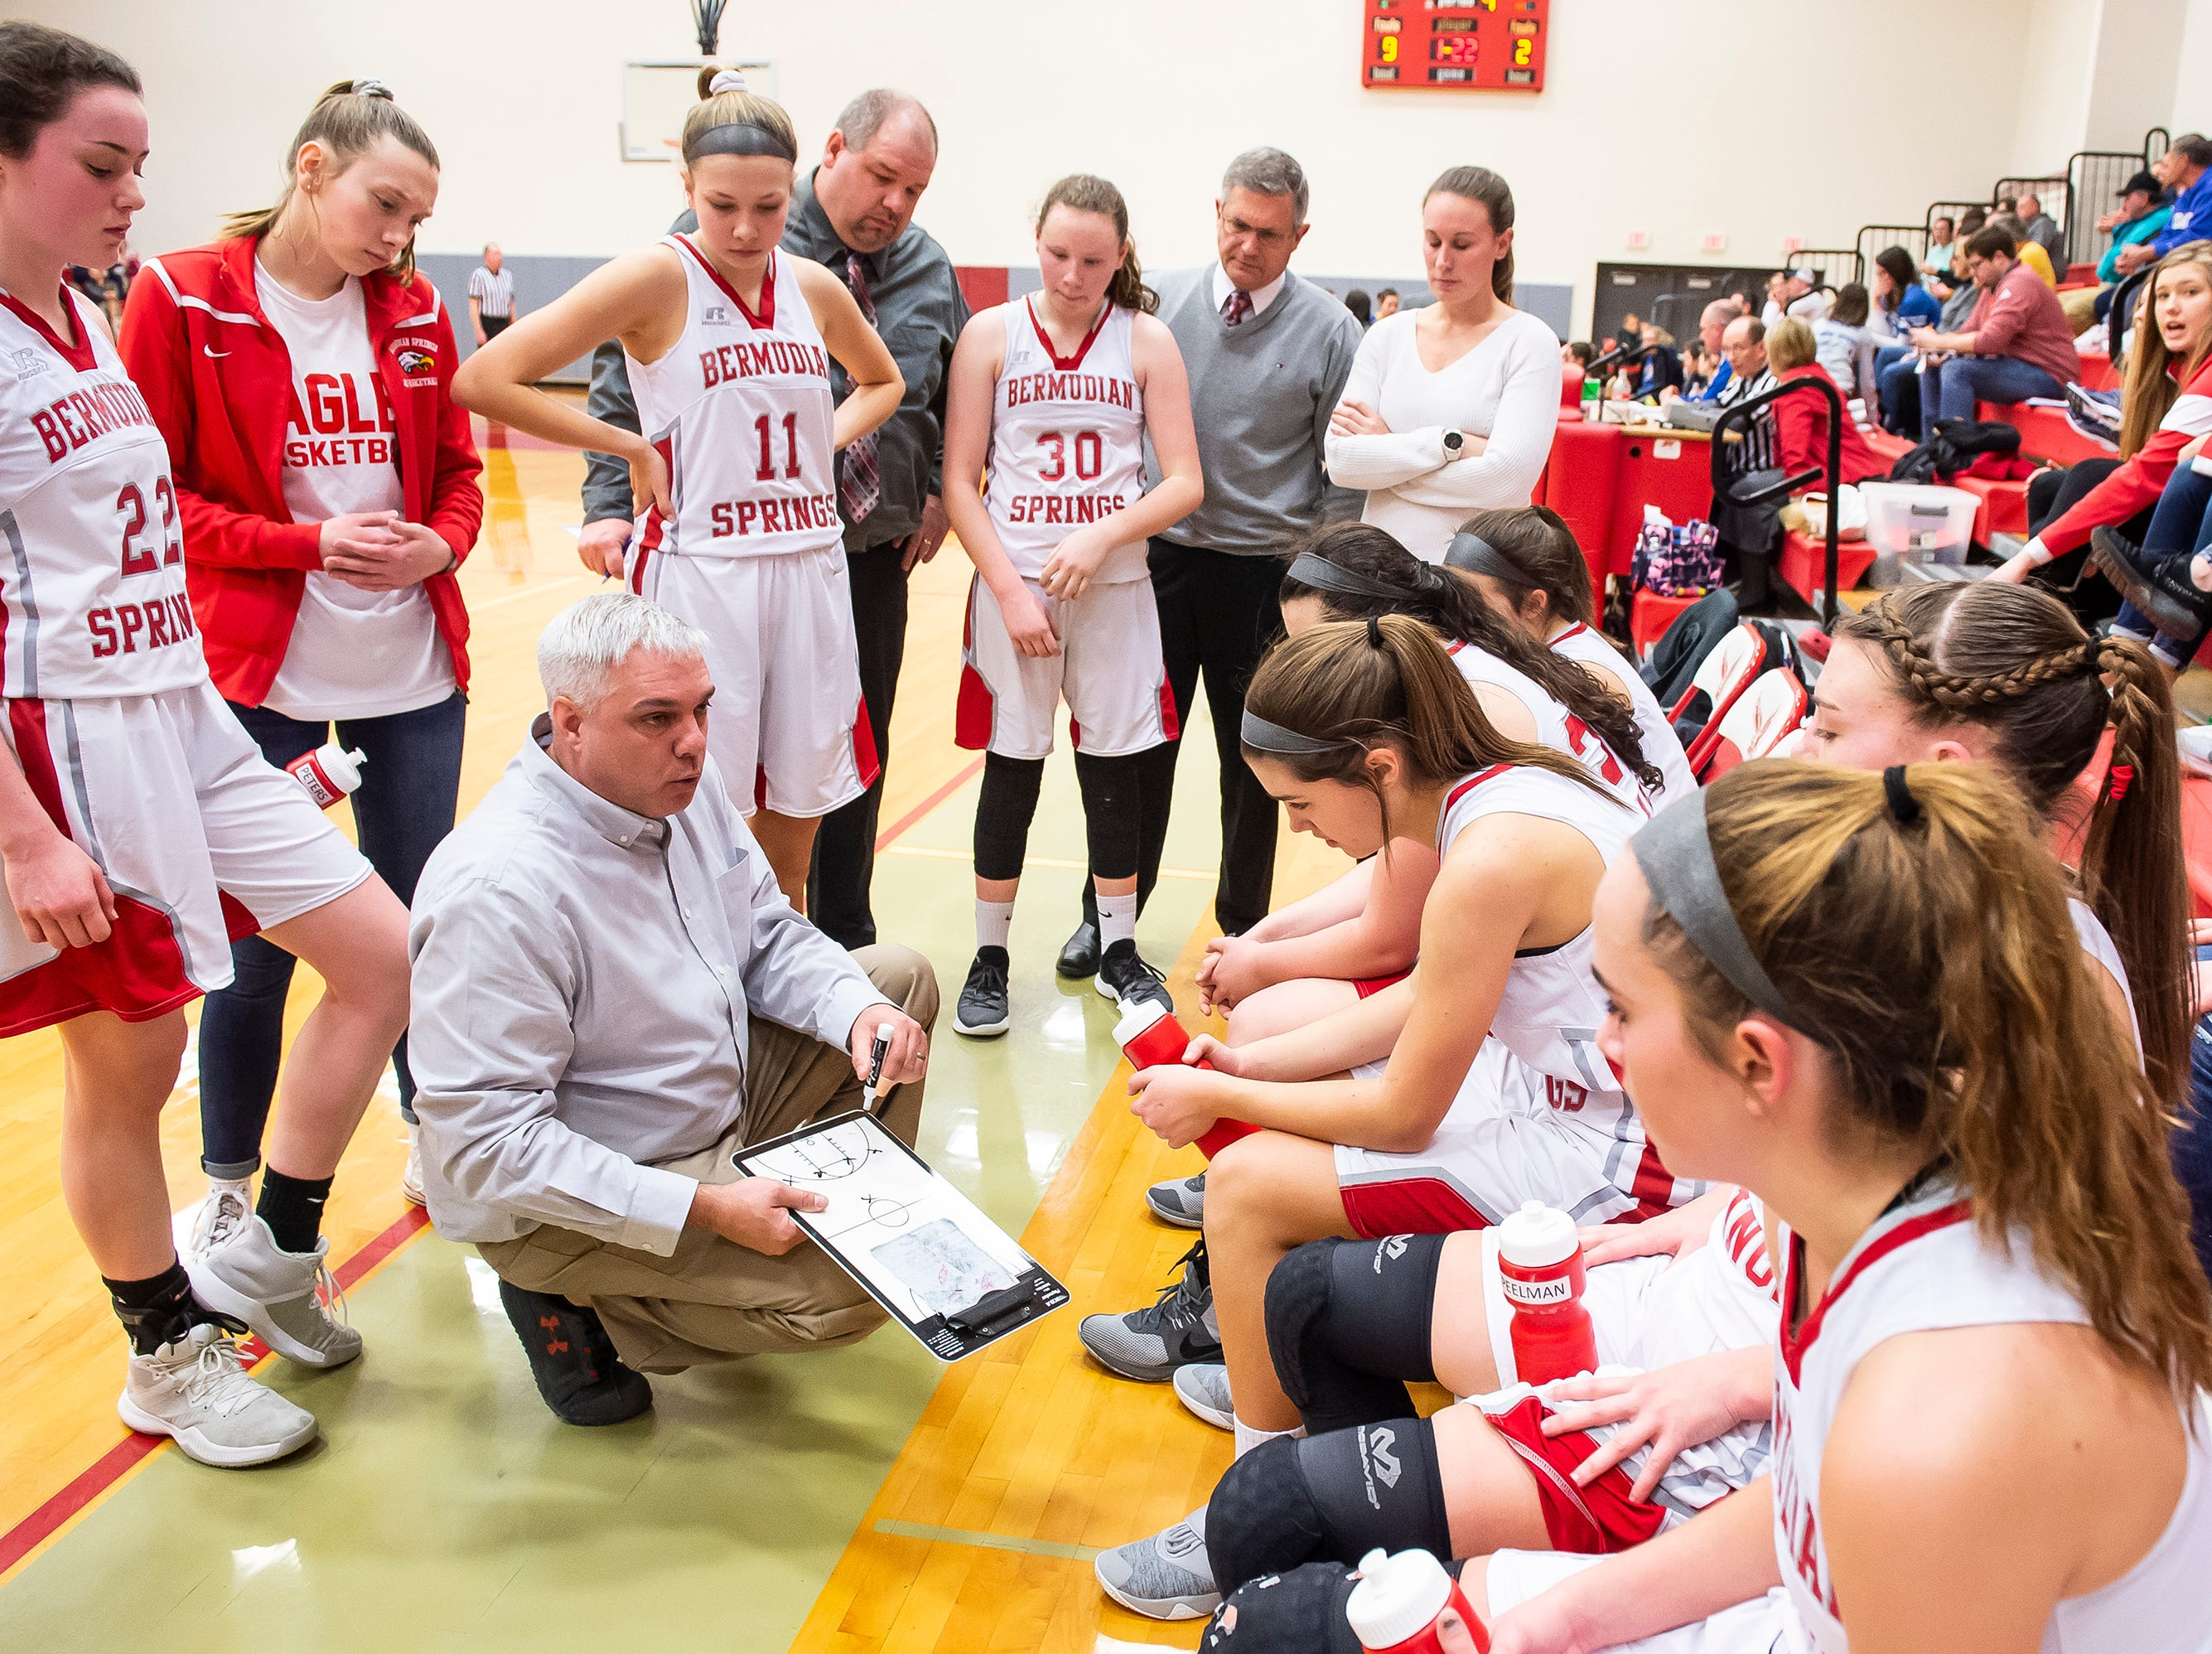 Bermudian Springs head coach Todd Askins draws up a play for his team during a timeout against Northern Lebanon in the first round of the District III 4-A playoffs Tuesday, February 19, 2019. The Eagles won 58-52.